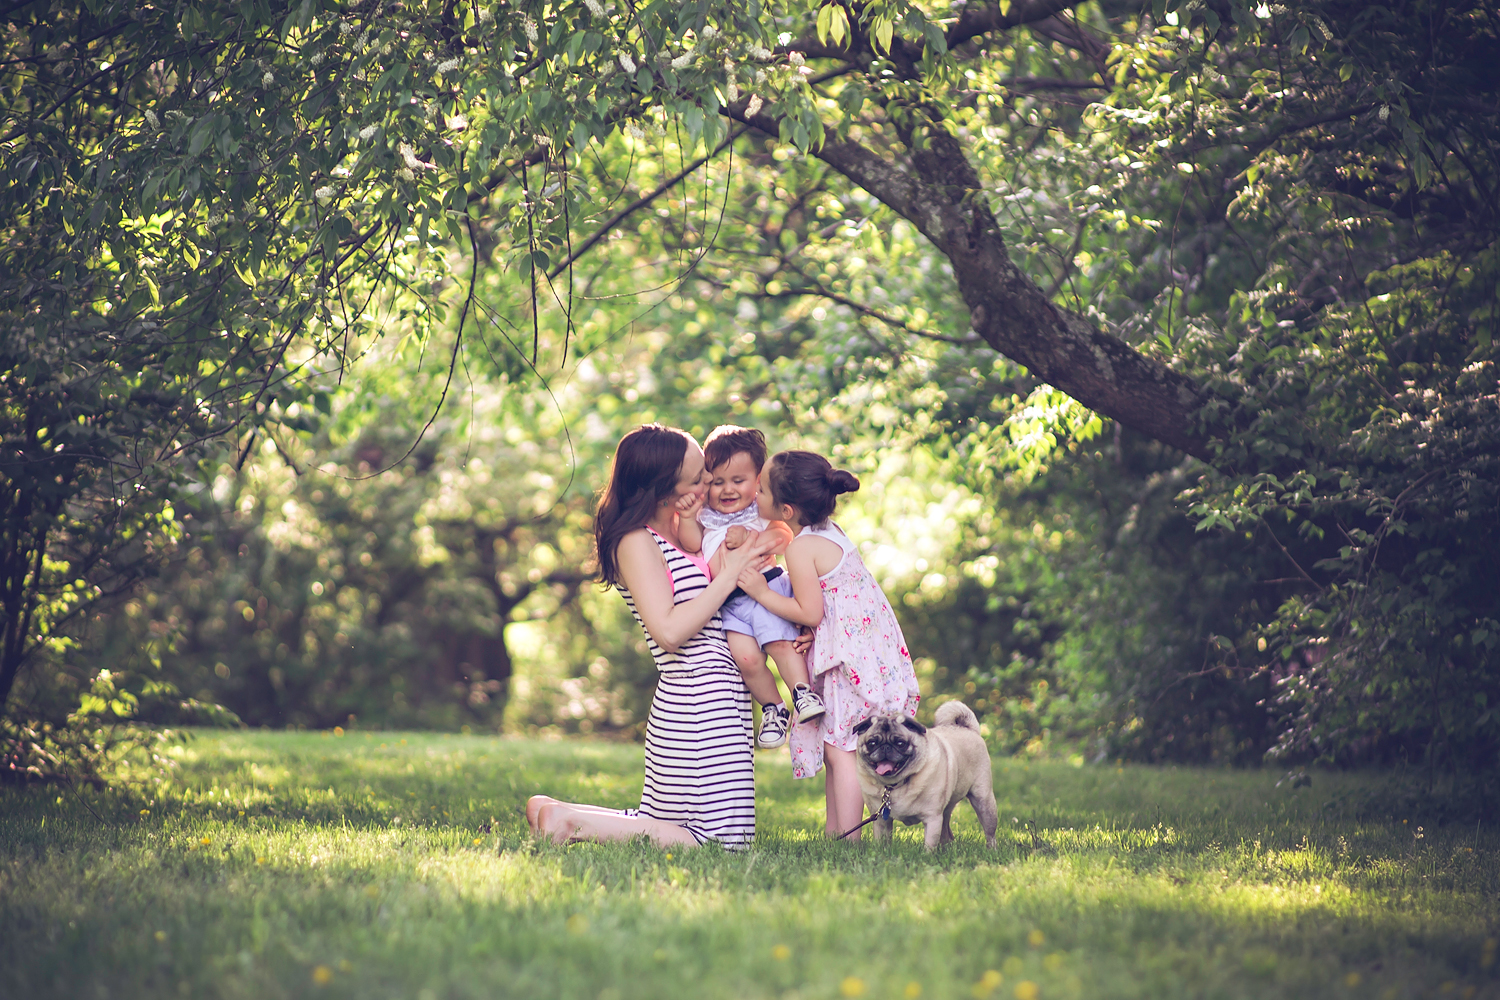 family and baby with pet pug dog   Tonya Teran Photography - Rockville, MD Newborn Baby and Family Photography